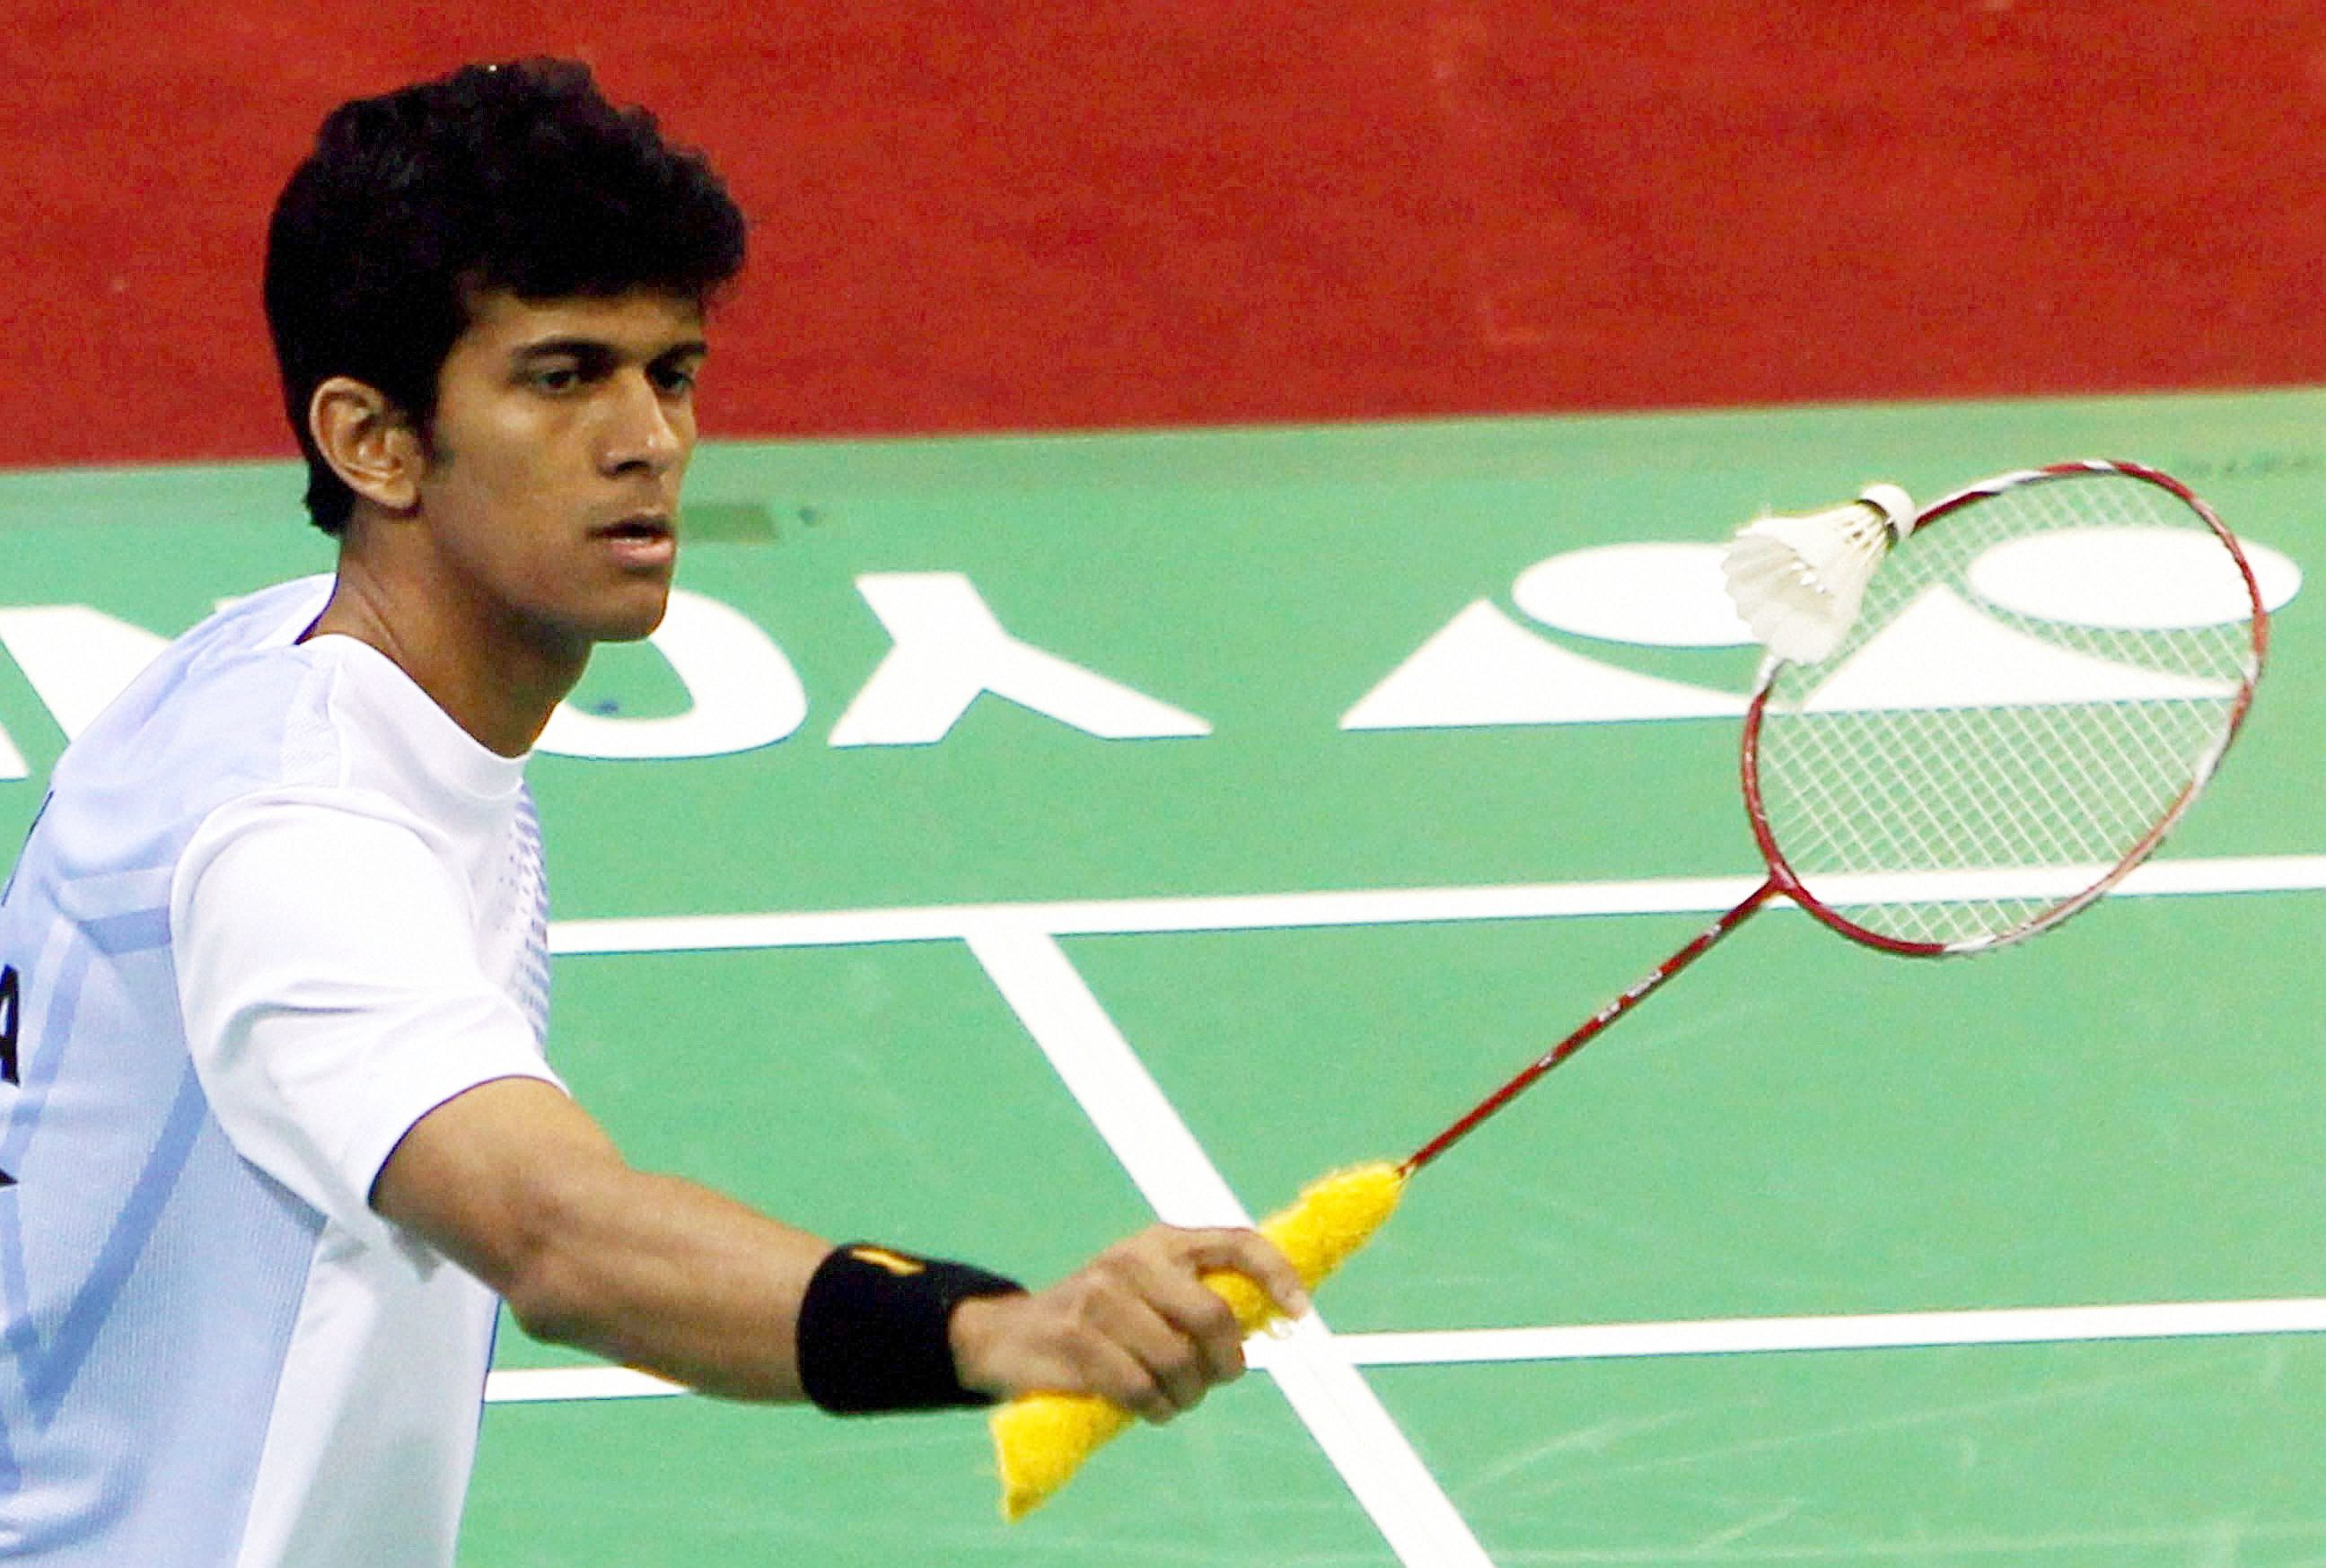 Ajay Jayaram Enters Next Round